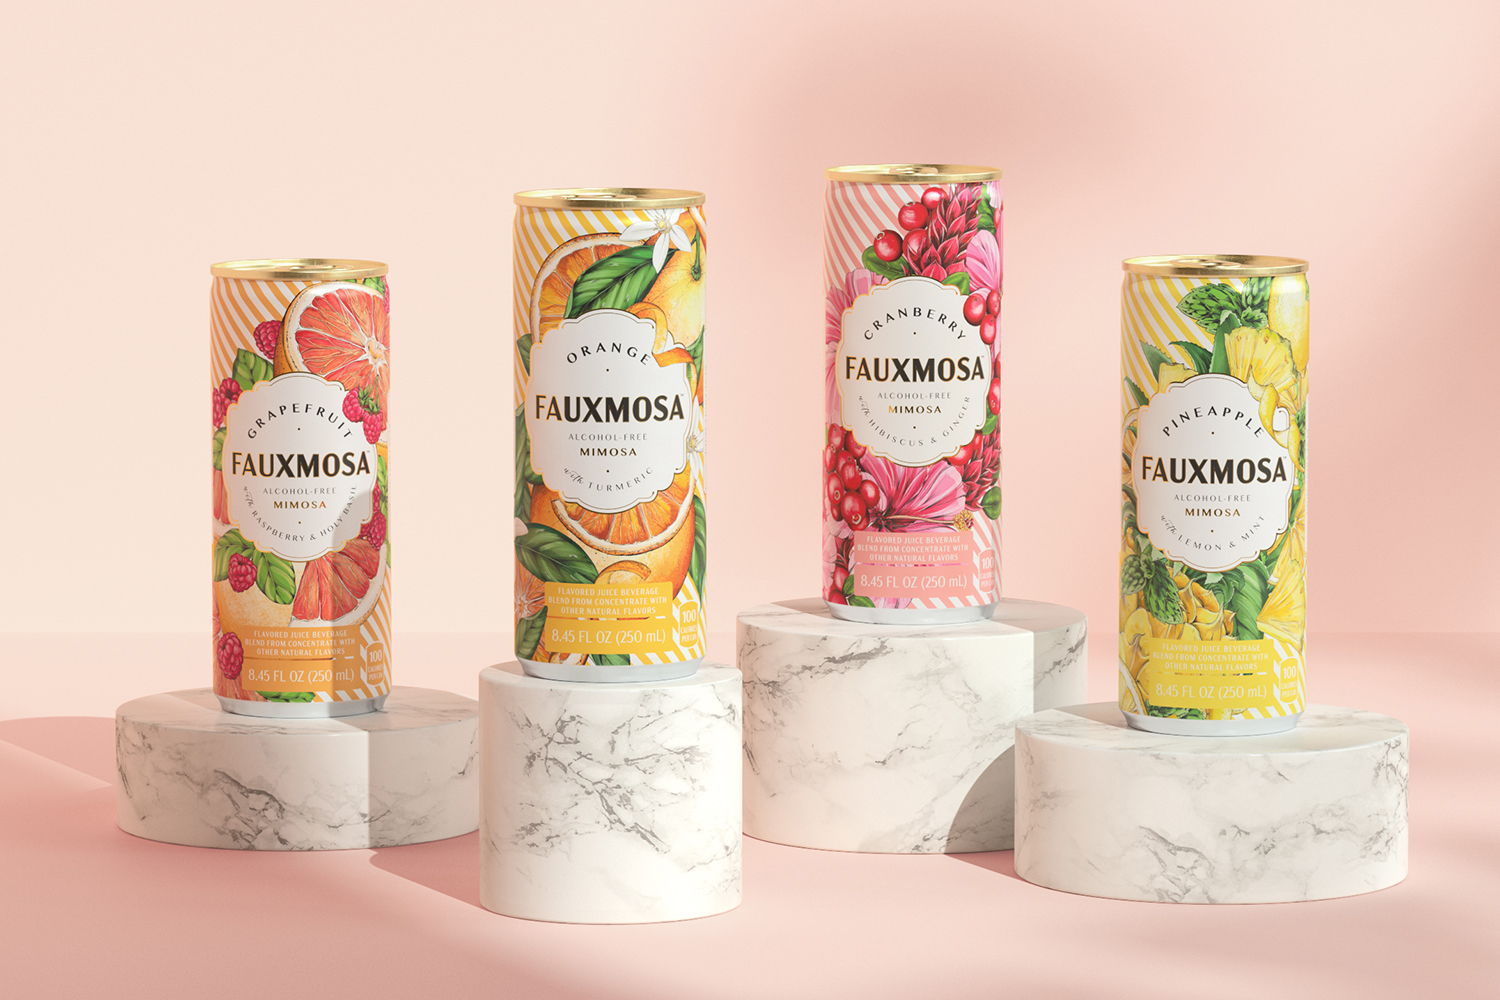 Thirst Craft Making Regret-Free Drinking Fashionable With FAUXMO